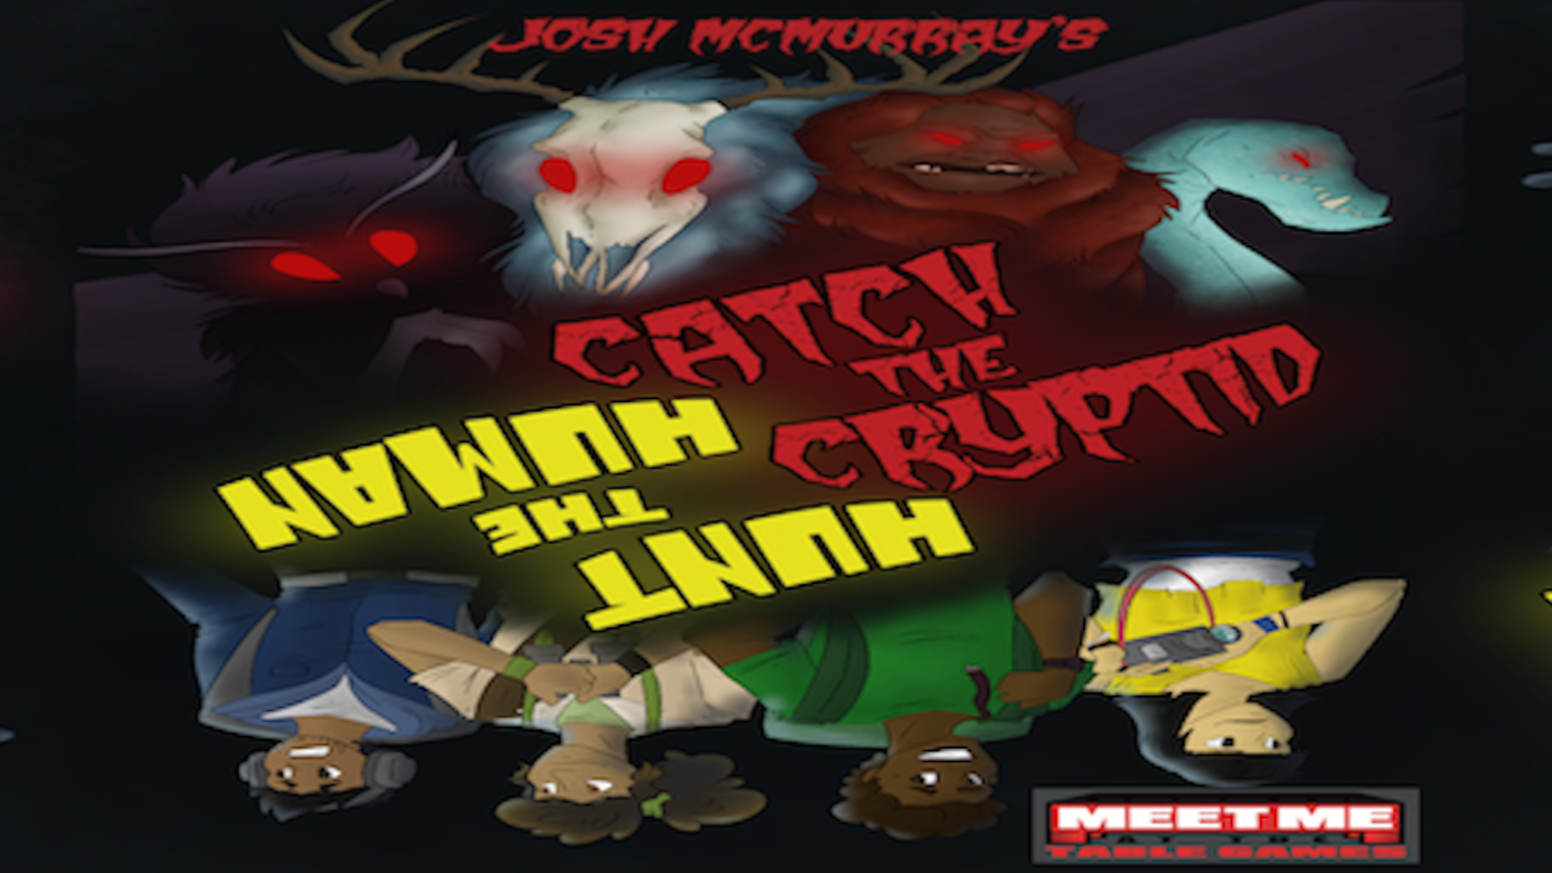 Catch The Cryptid/Hunt The Human is a secret role game for 4-10 players that plays in 5-10 minutes and is for ages 10 and up!